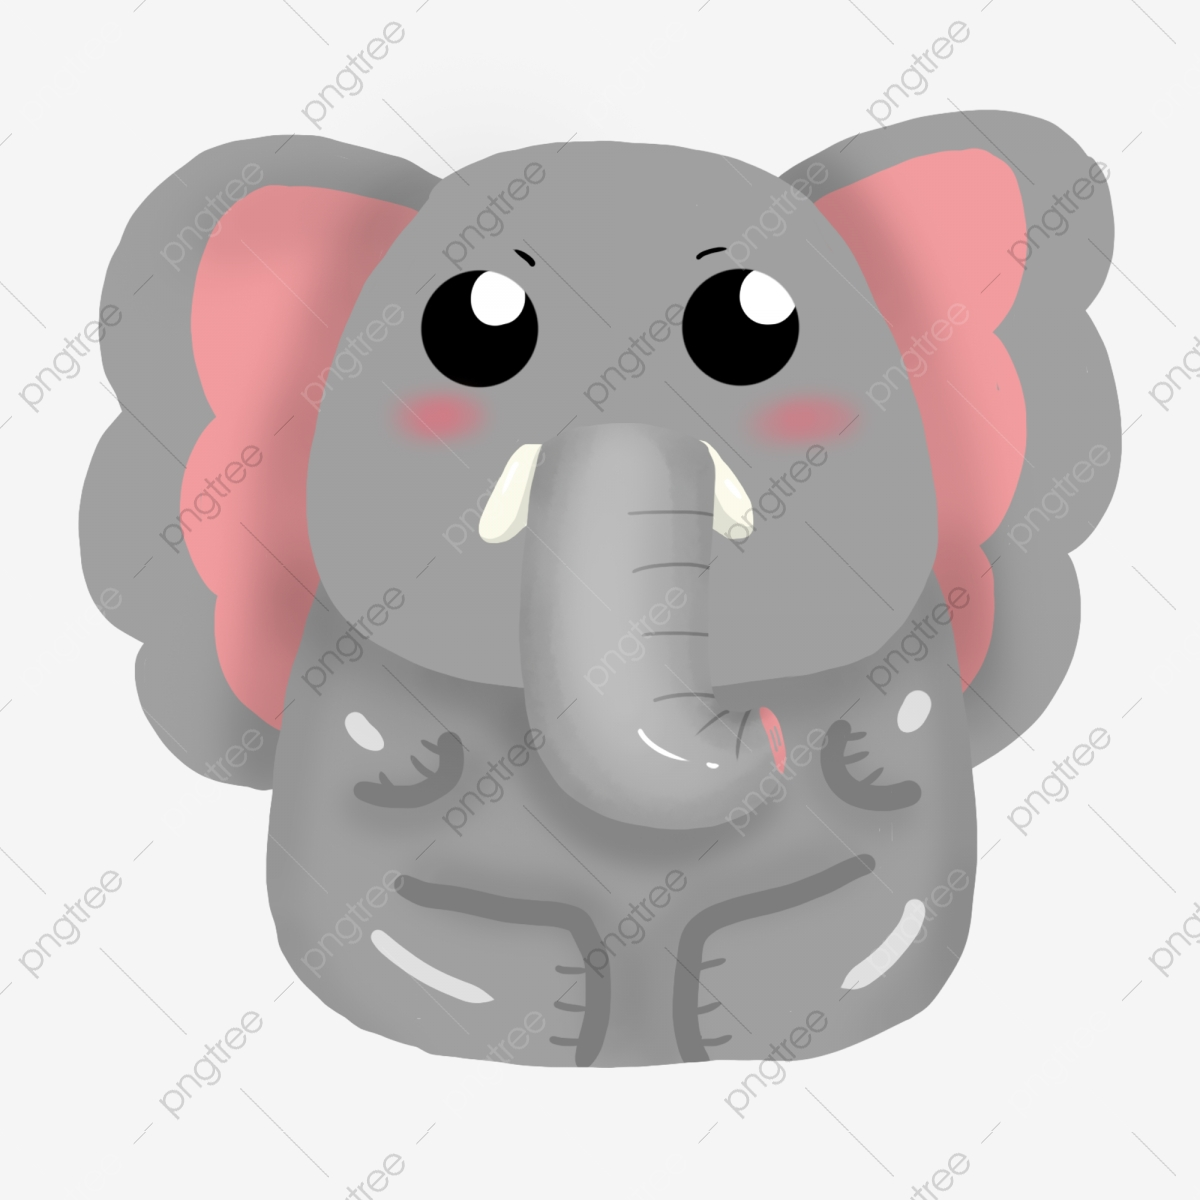 Cute Cartoon Elephant Vector Design Material Cute Cartoon Elephant Png Transparent Clipart Image And Psd File For Free Download